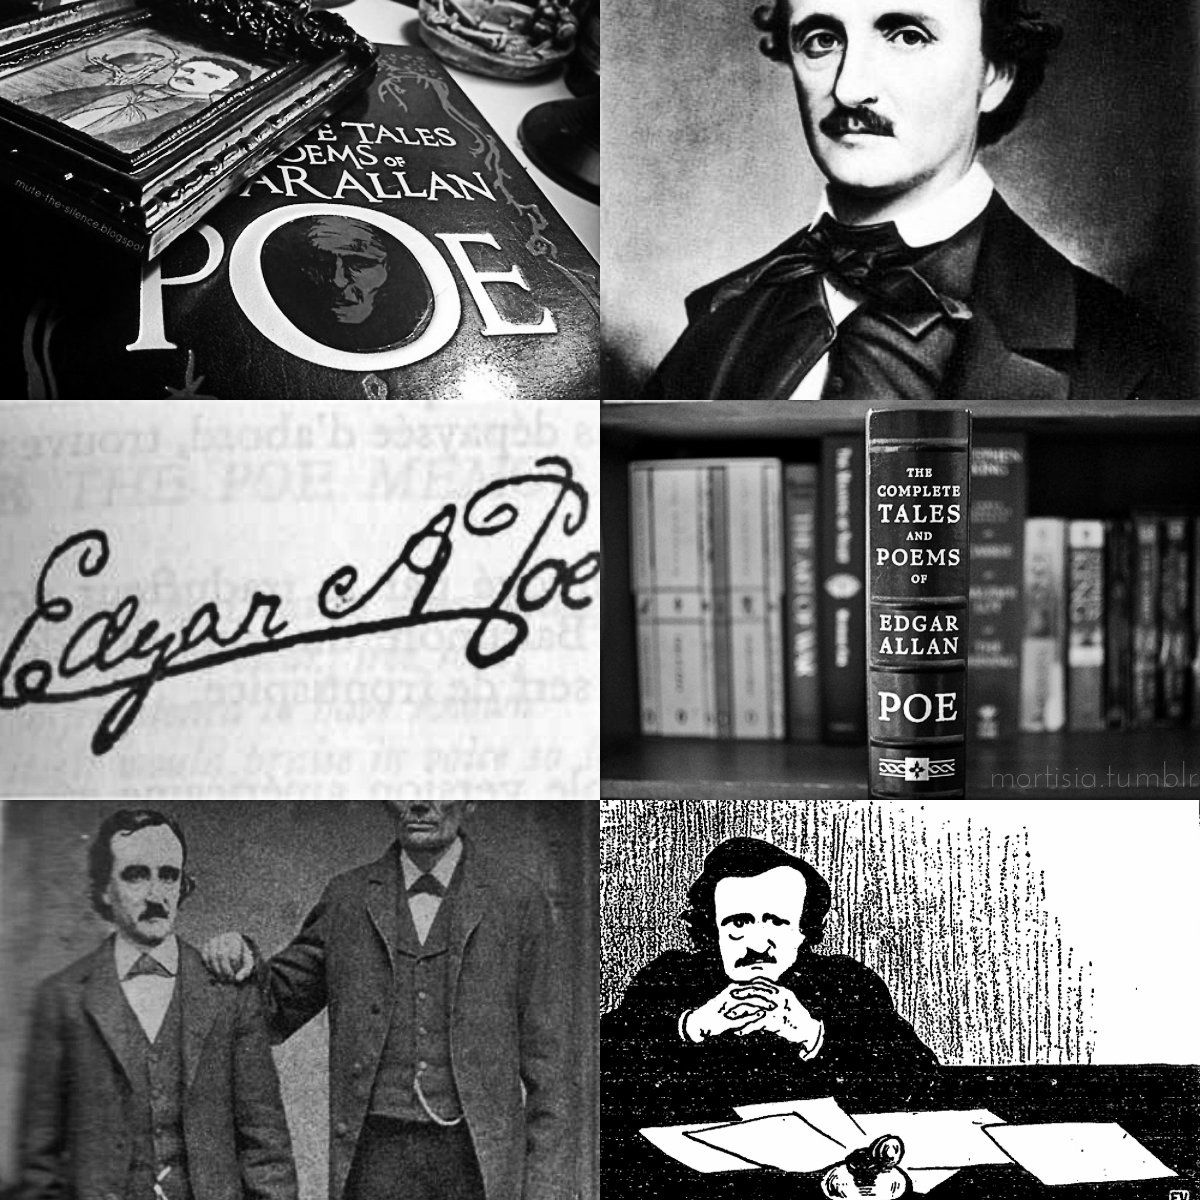 best images about poenian philosophy multimedia 17 best images about poenian philosophy multimedia edgar allen poe and psychiatric hospital